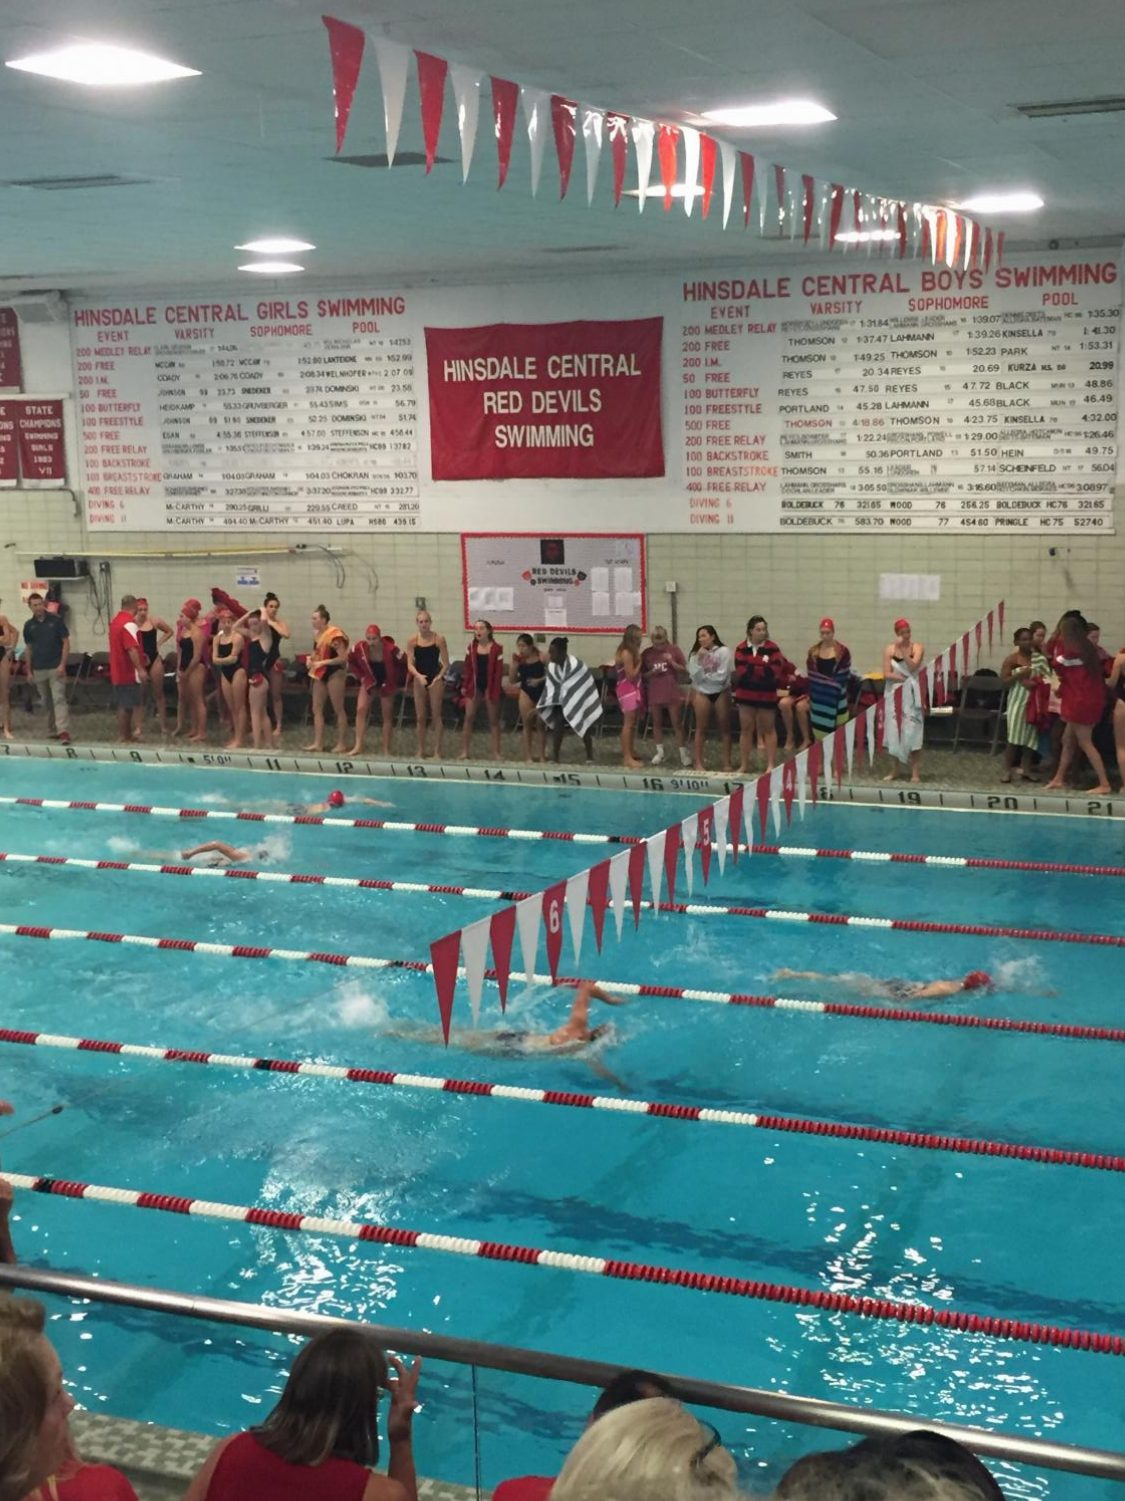 The swim meet against LT is highly anticipated because of the long-held rivalry between the teams.